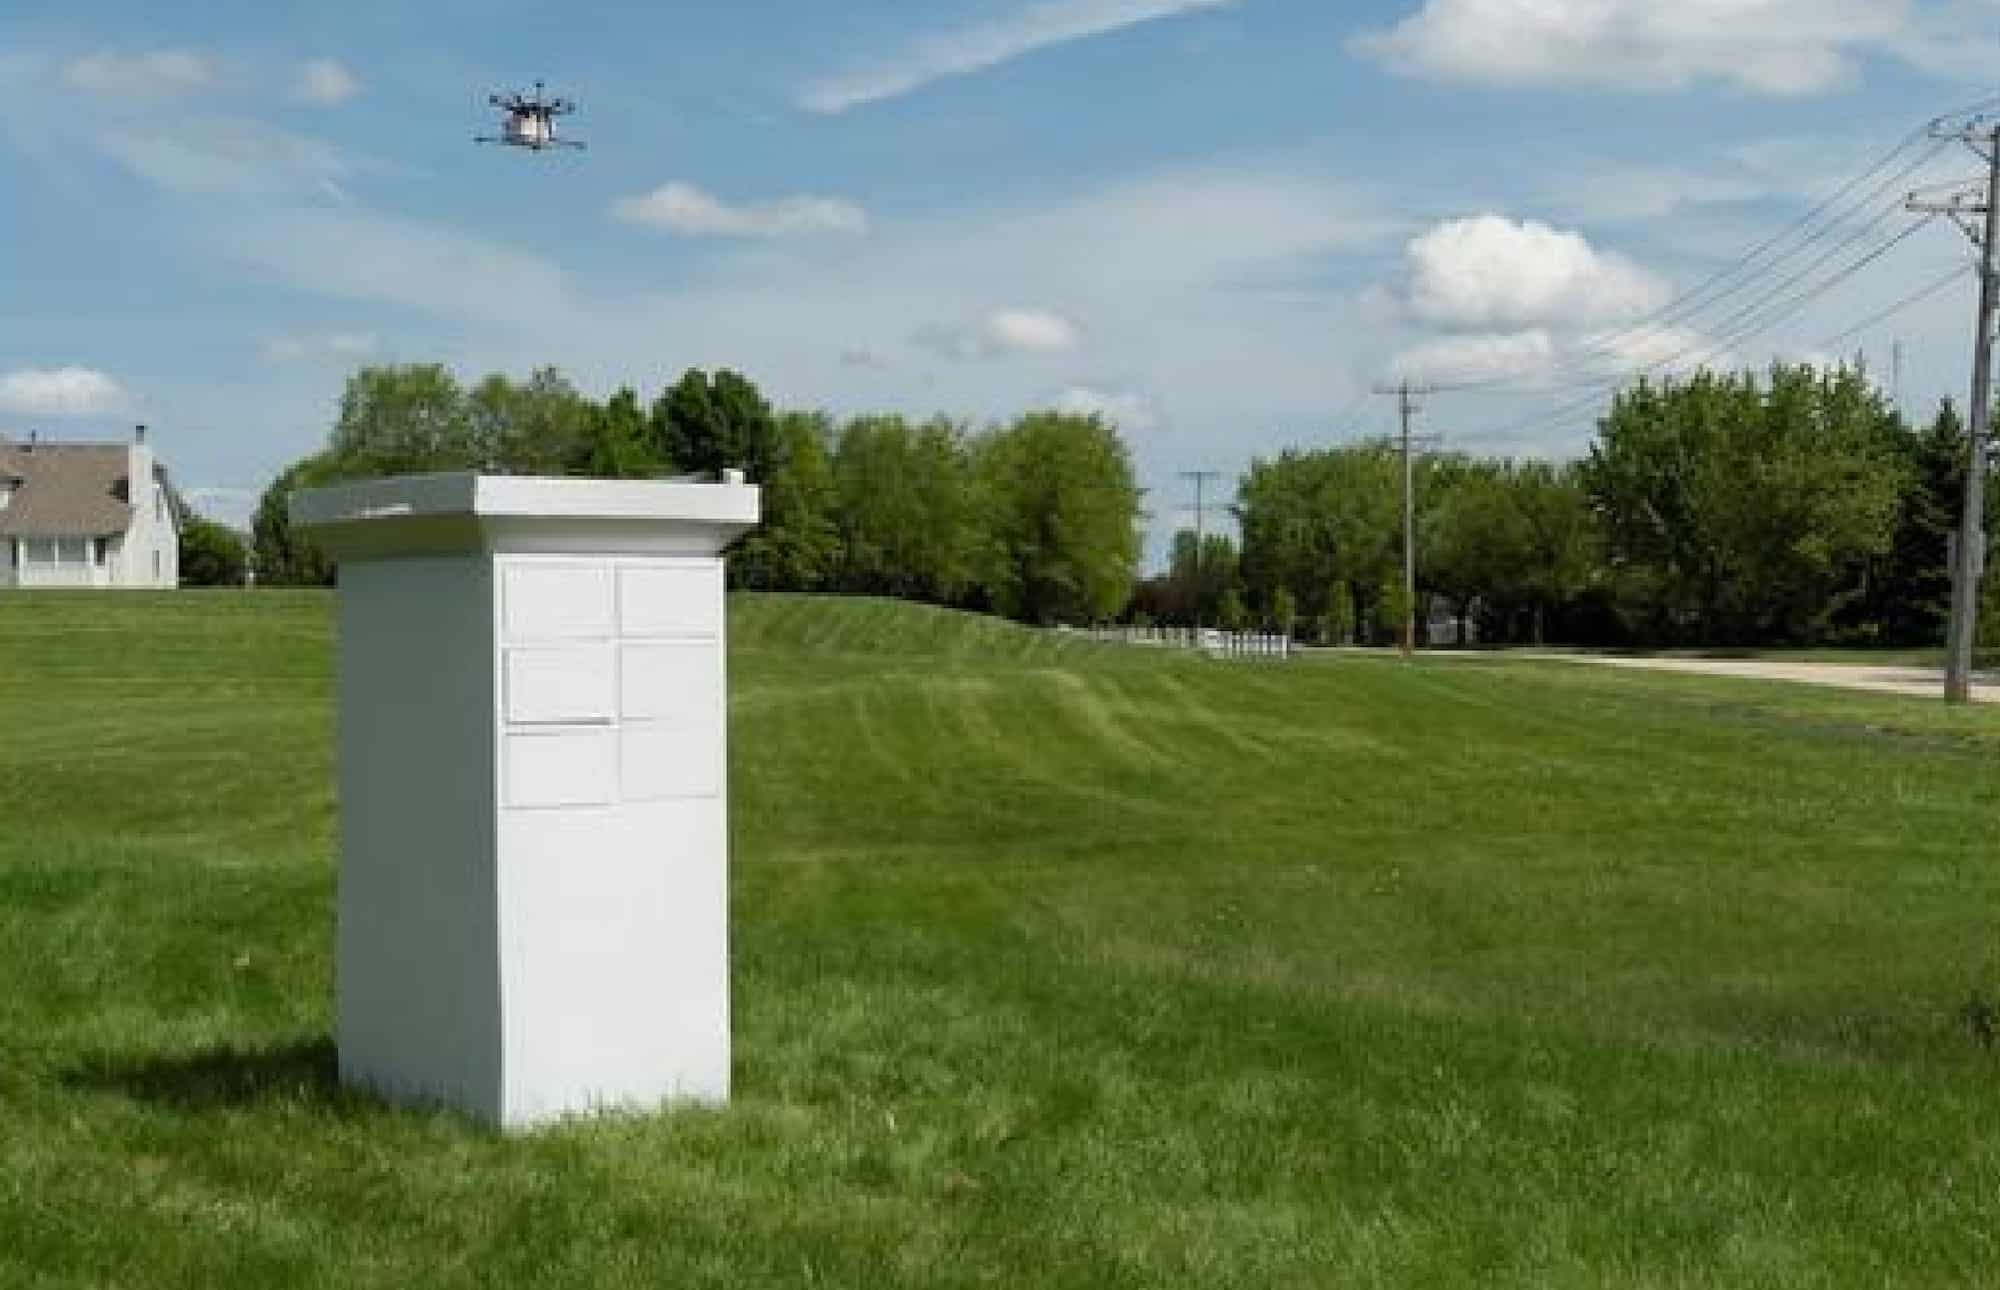 Drone delivery mailbox maker Valqari get 500K in funding